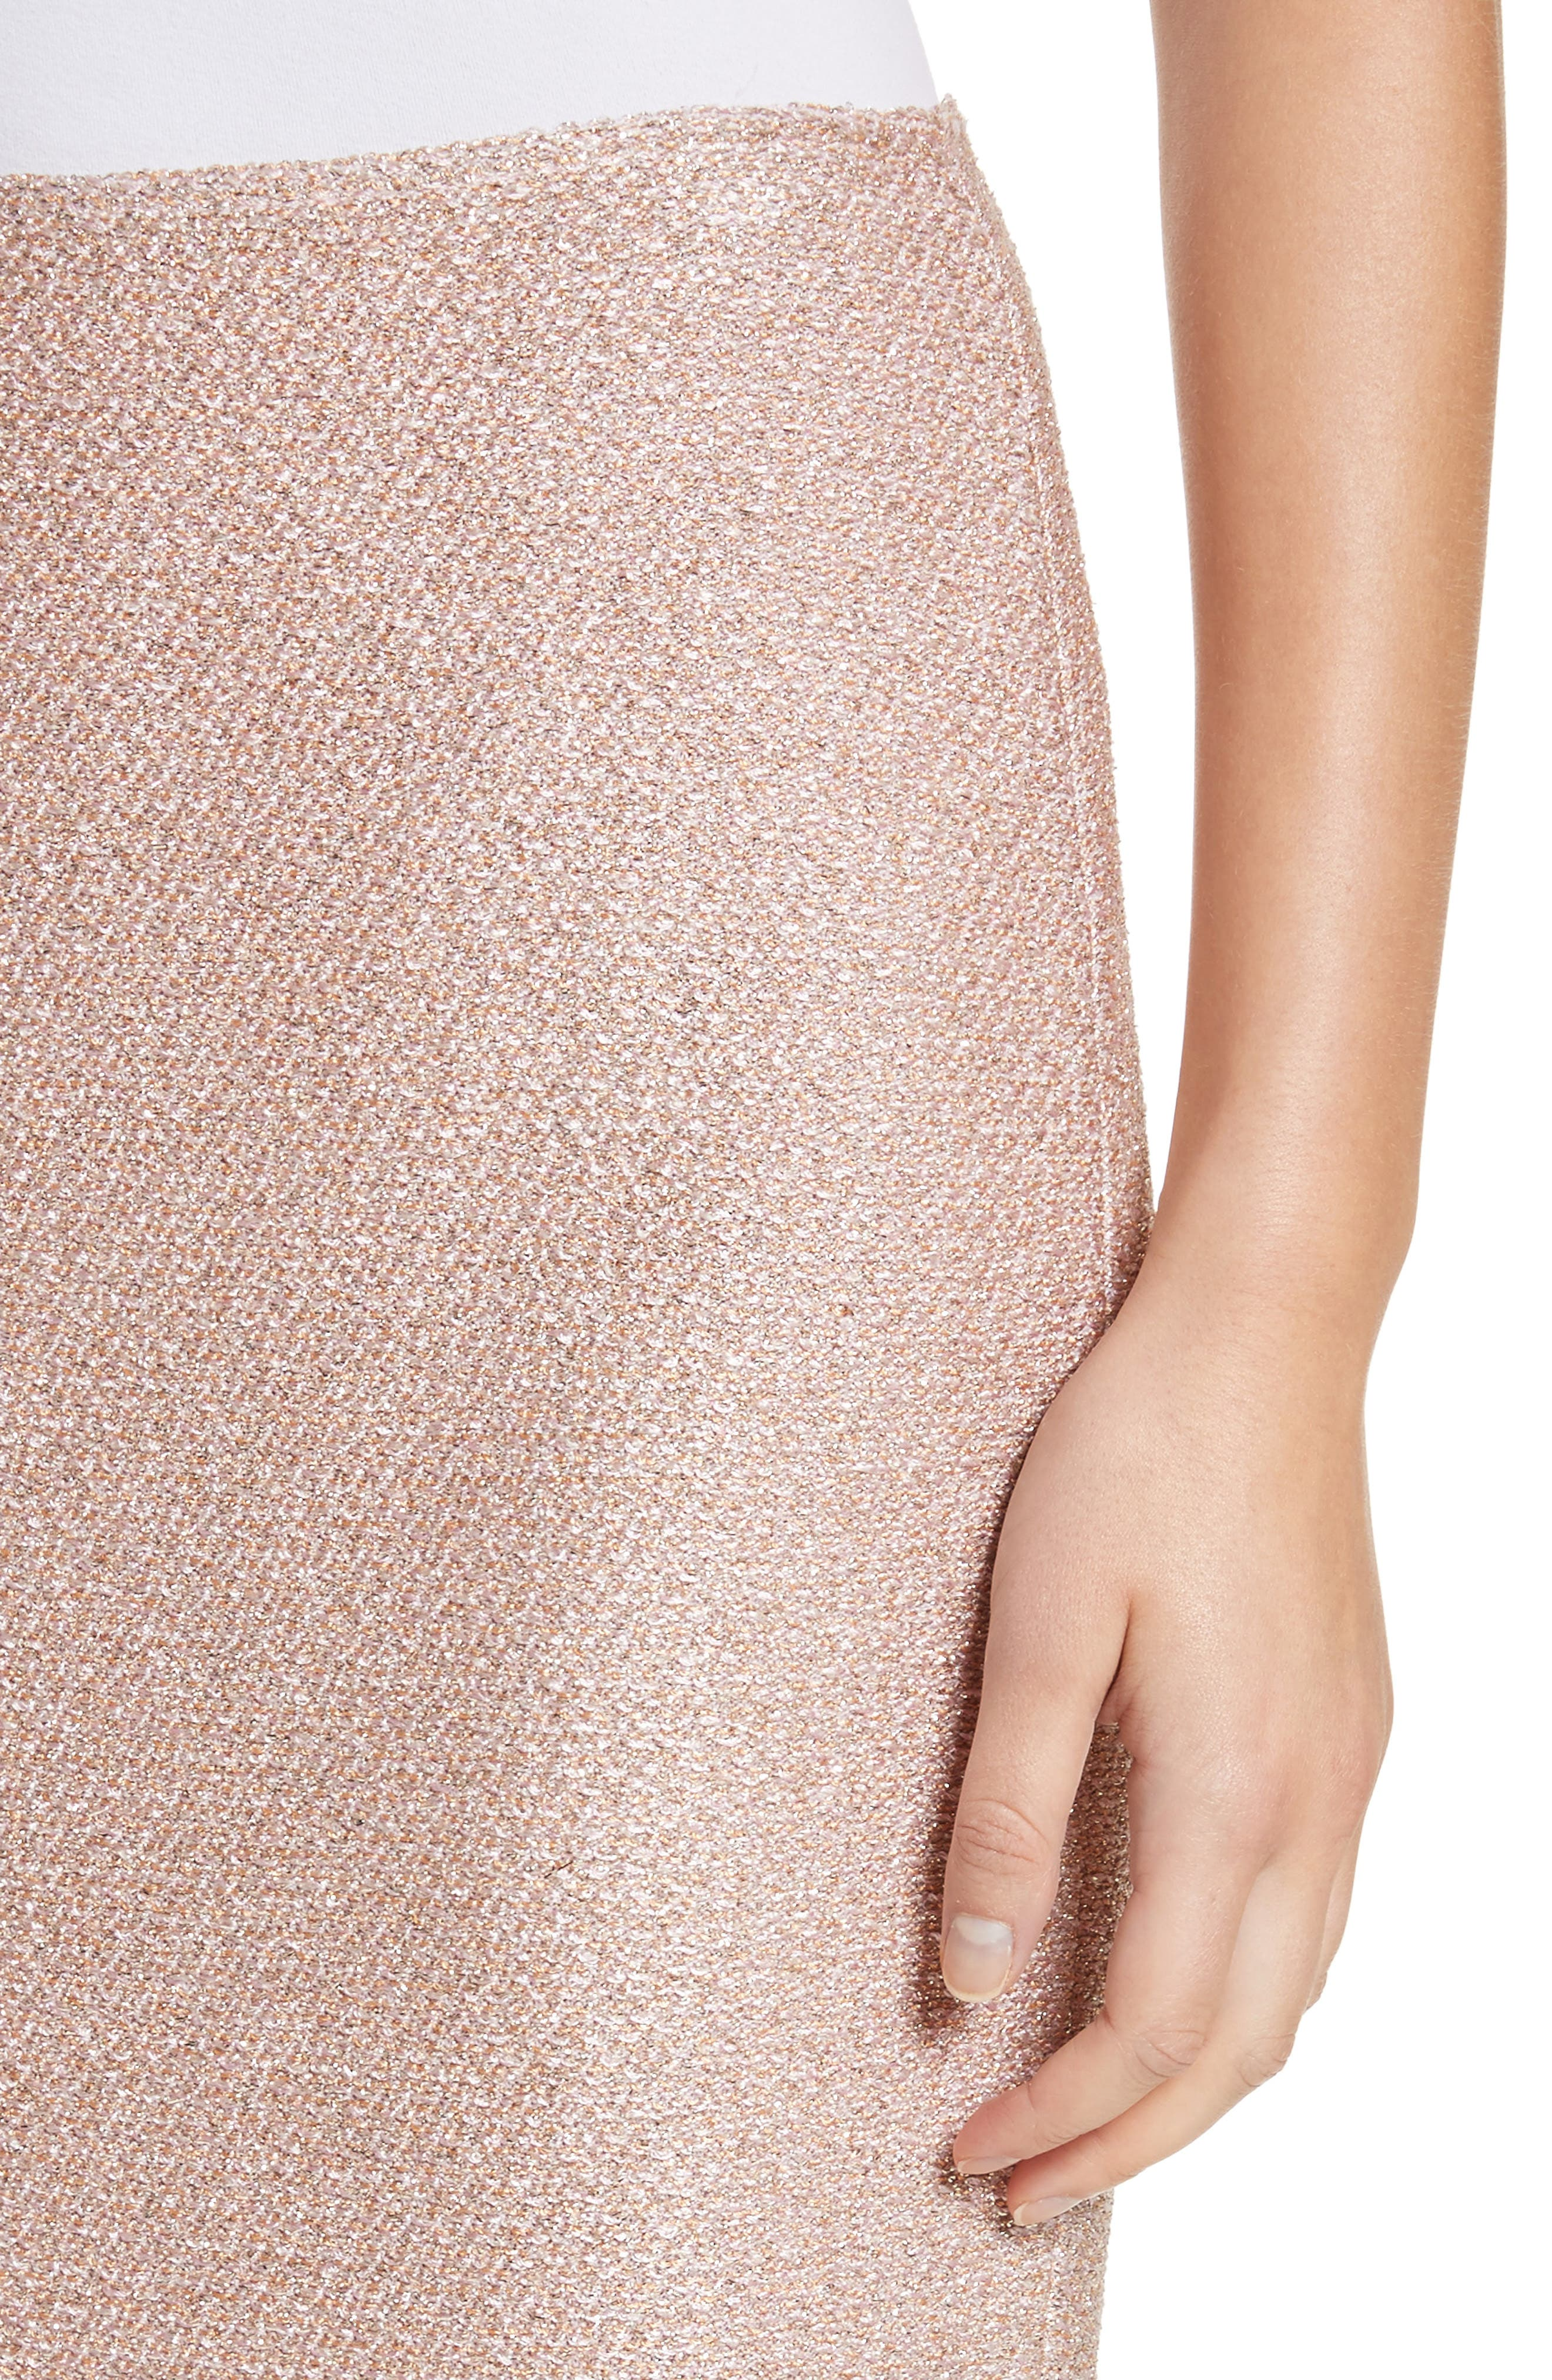 ST. JOHN COLLECTION,                             Frosted Metallic Knit Pencil Skirt,                             Alternate thumbnail 4, color,                             660